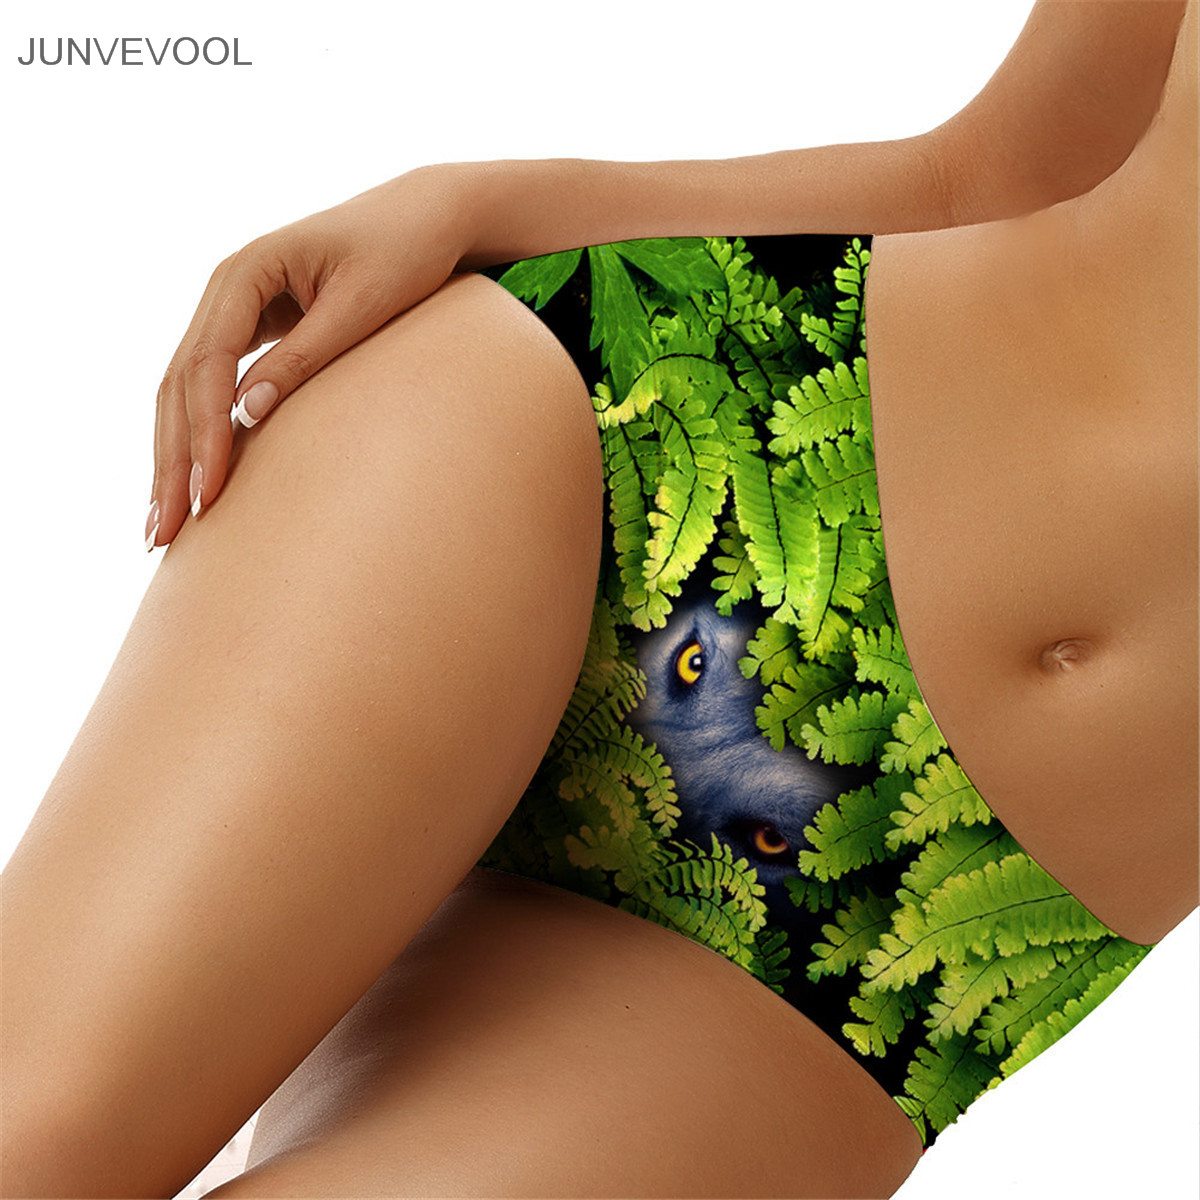 Crotchless Ultra-thin Comfort Underwear Eyes on The Leaves Print Seamless Panties for Wo ...